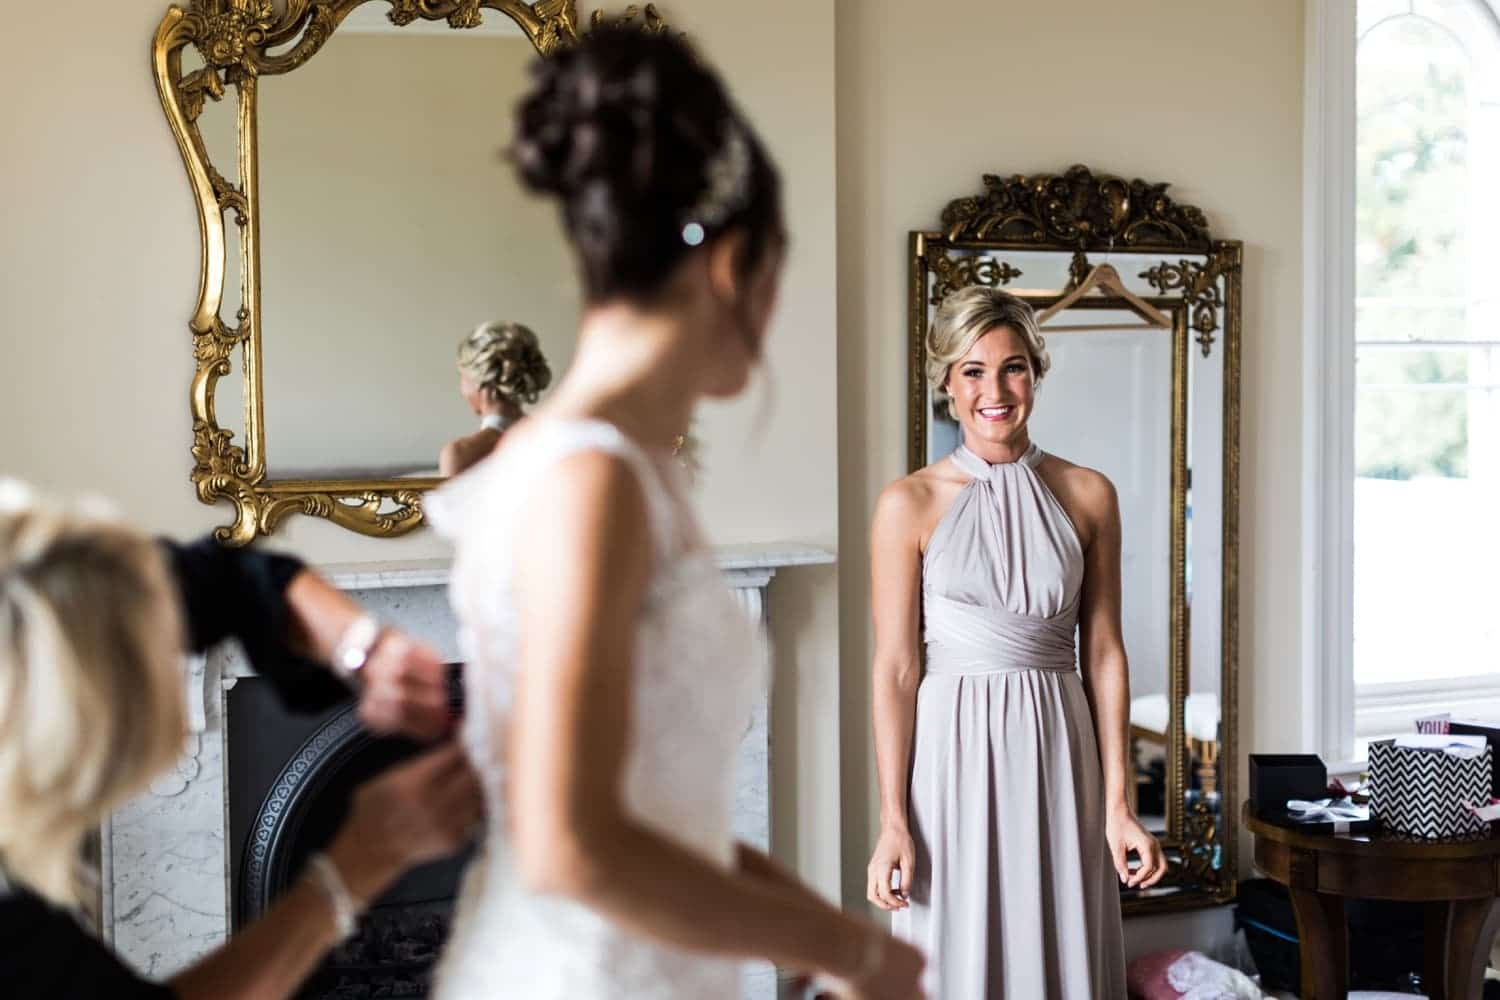 Bride's sister watching her putting on dress